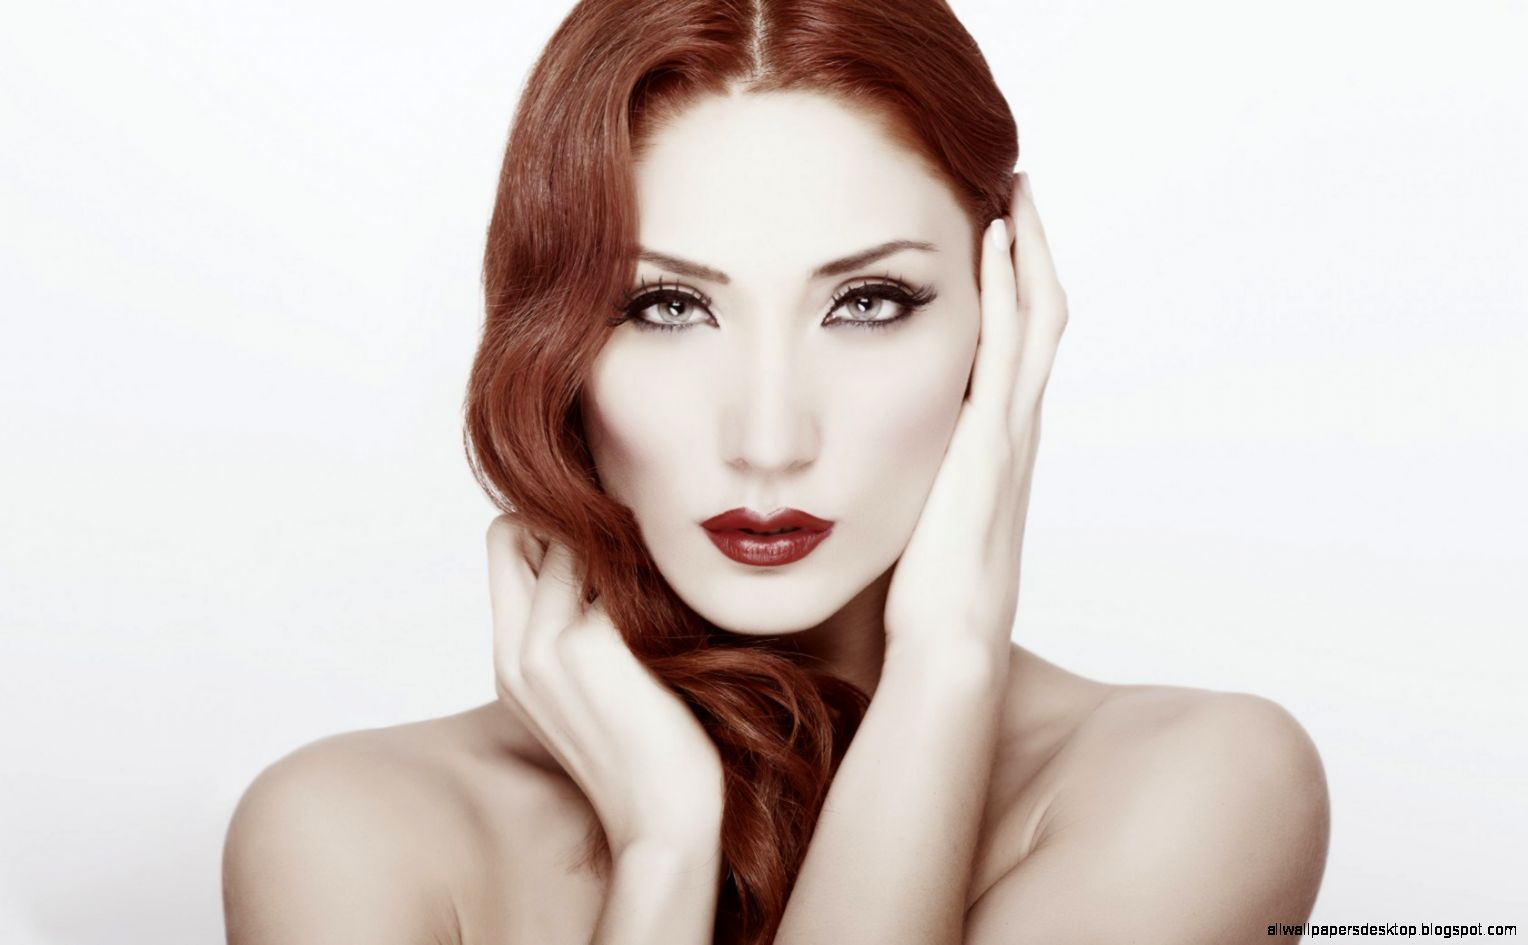 Lovely Girl Redhead Makeup 6971090